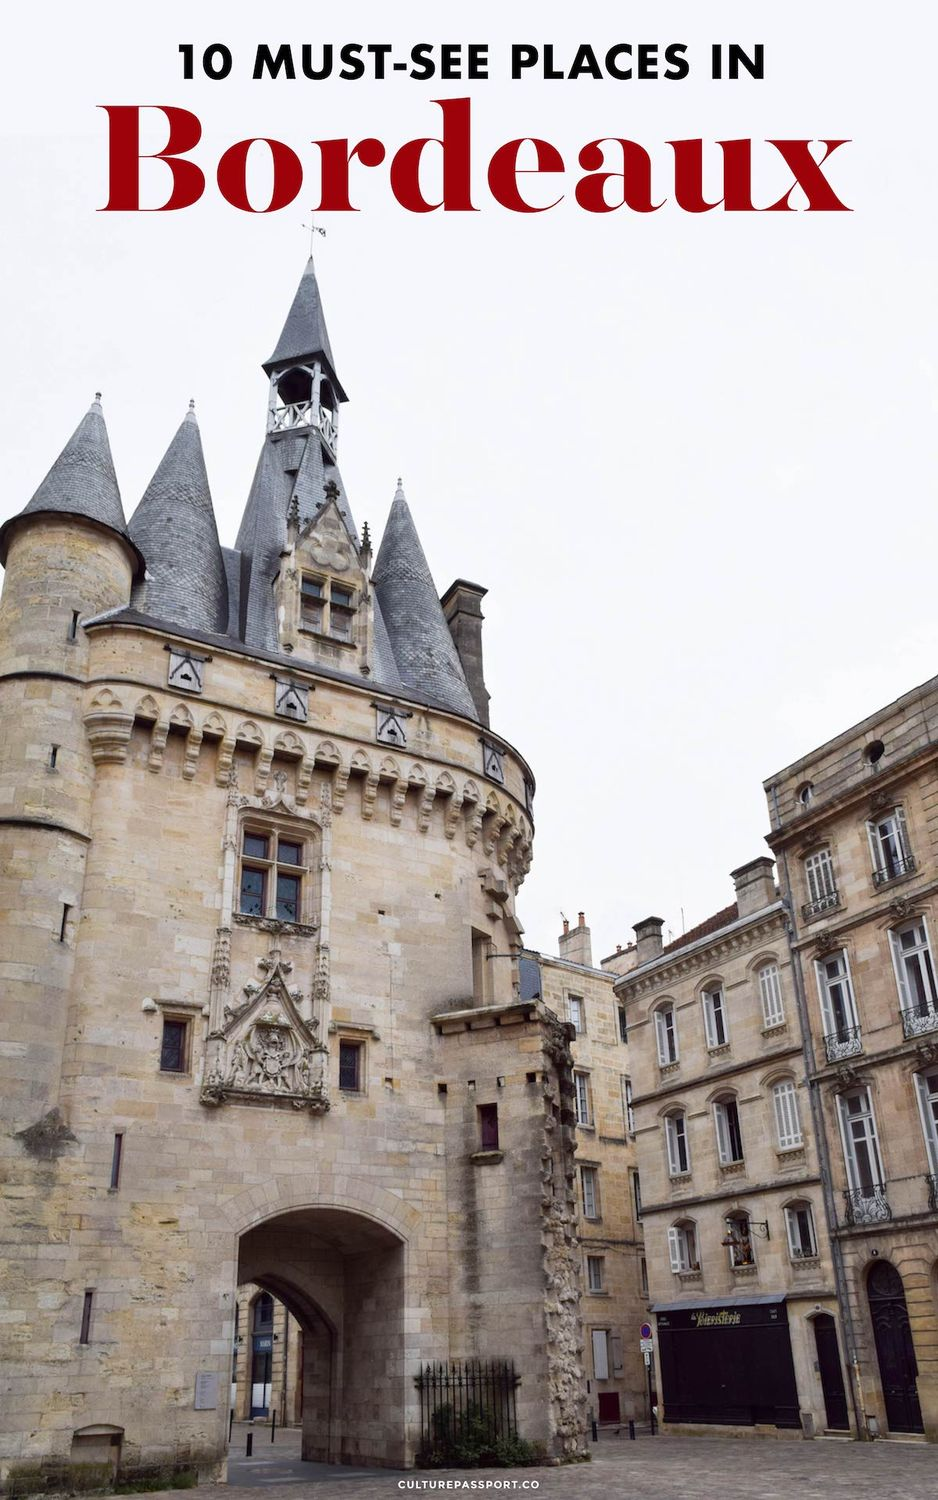 Must-See Places in Bordeaux